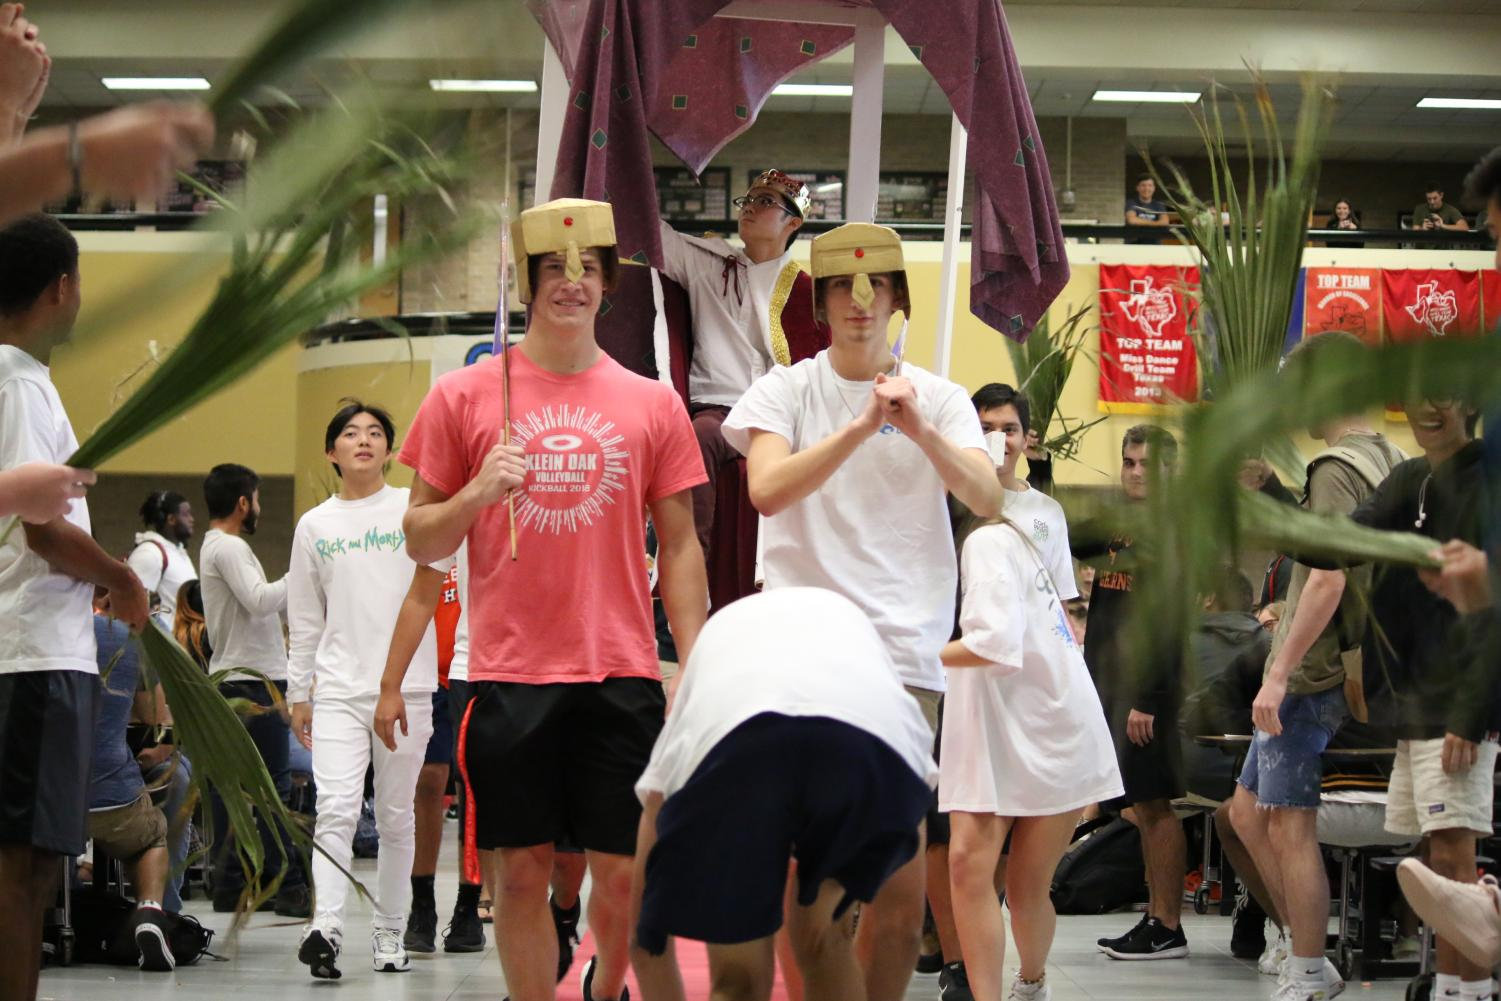 As the 'red carpet' is rolled out, senior Jon Shin makes his grand entrance during D lunch to his 'queen'.